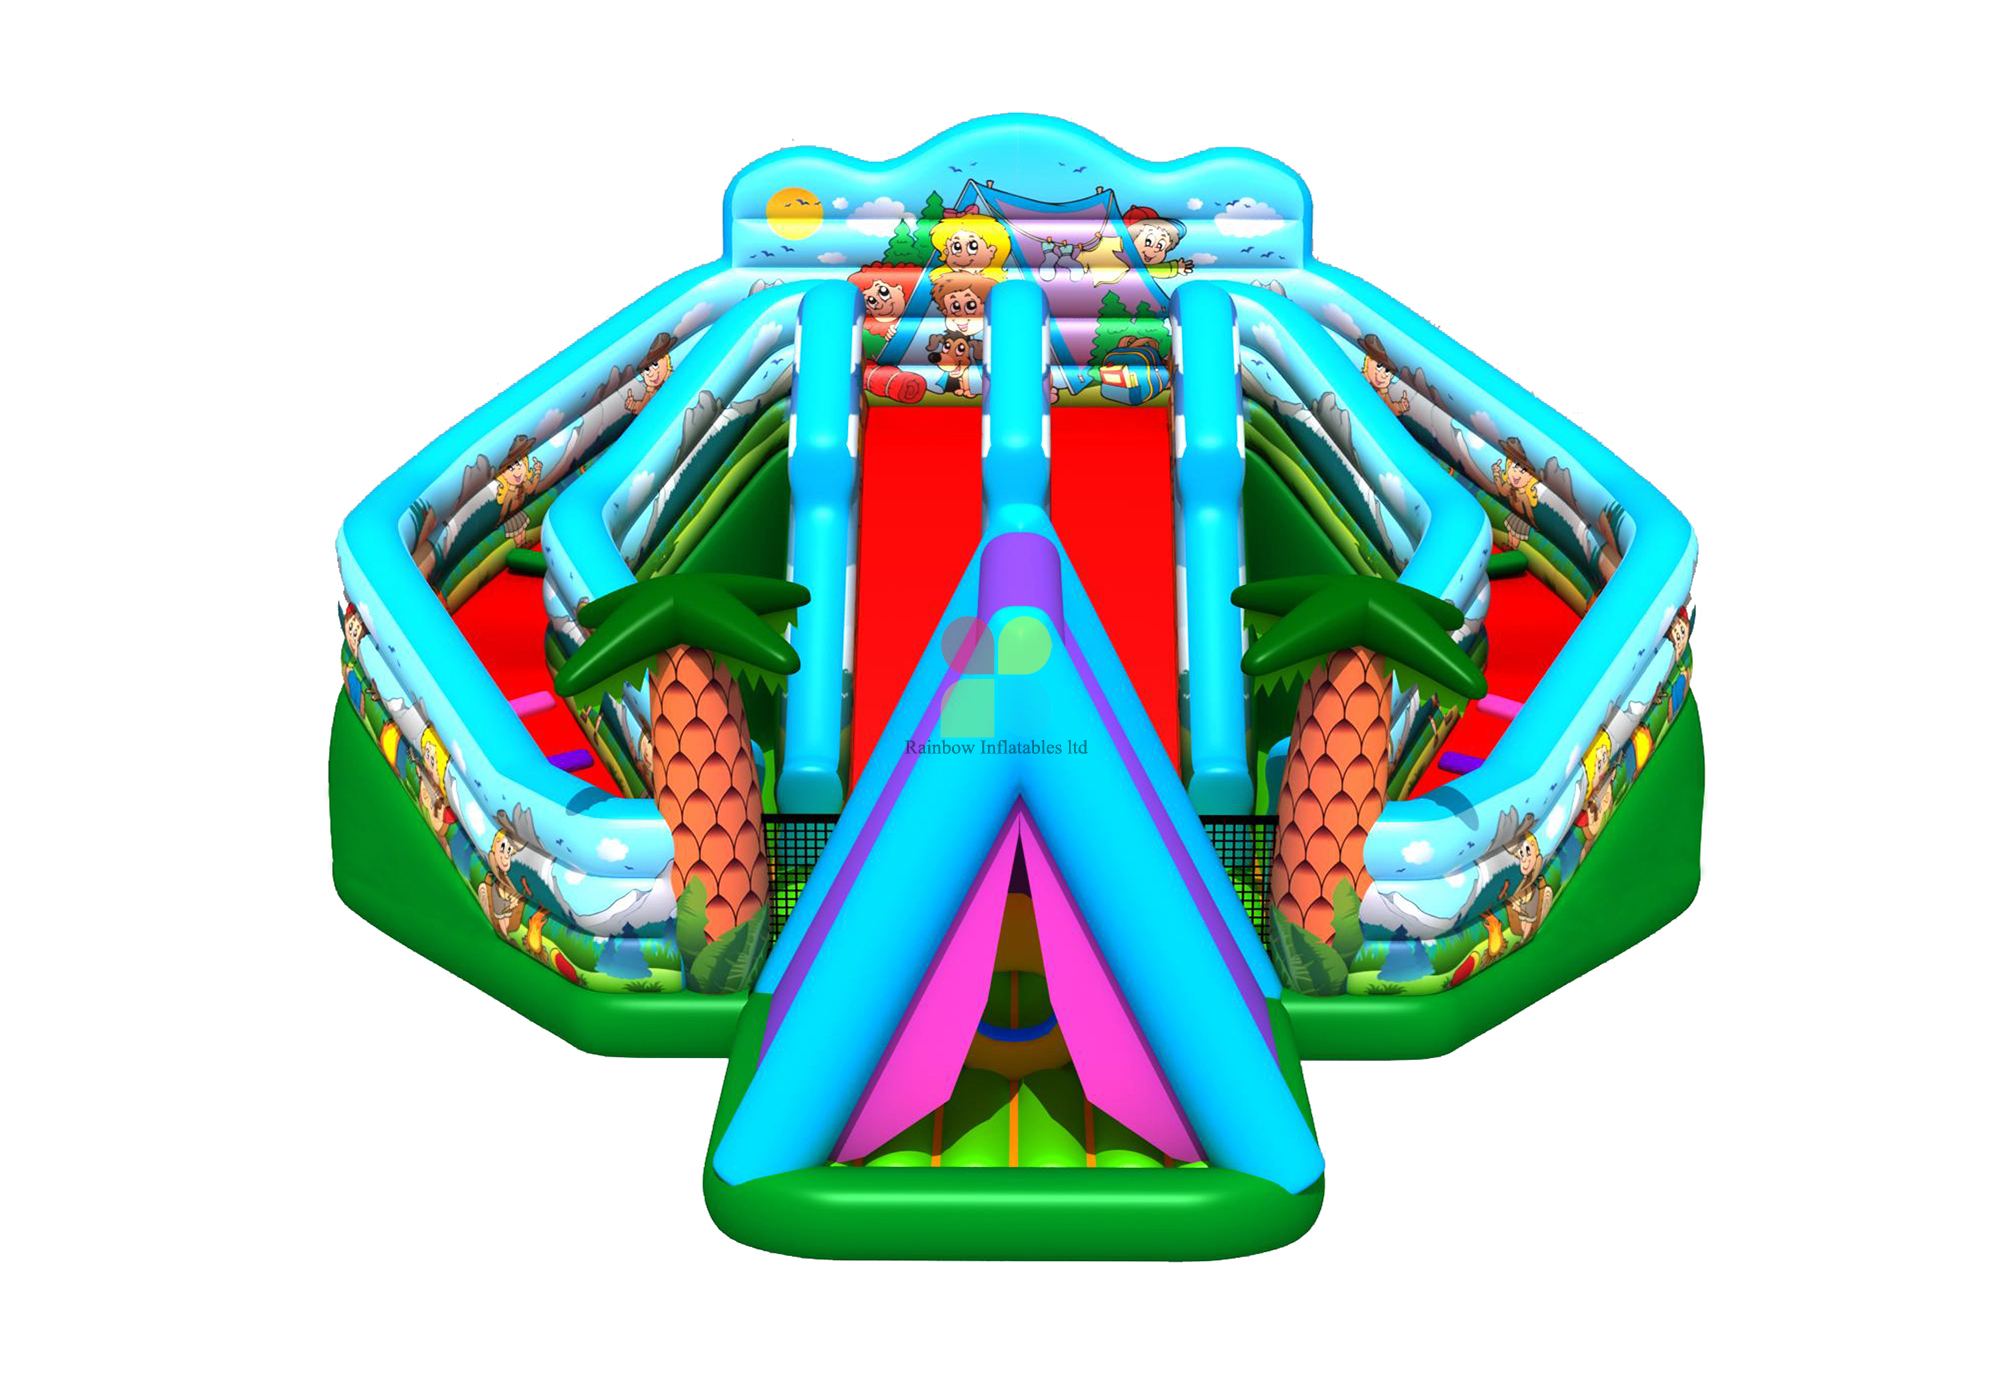 RB01024(10x10m) Inflatable jungle funcity for sale